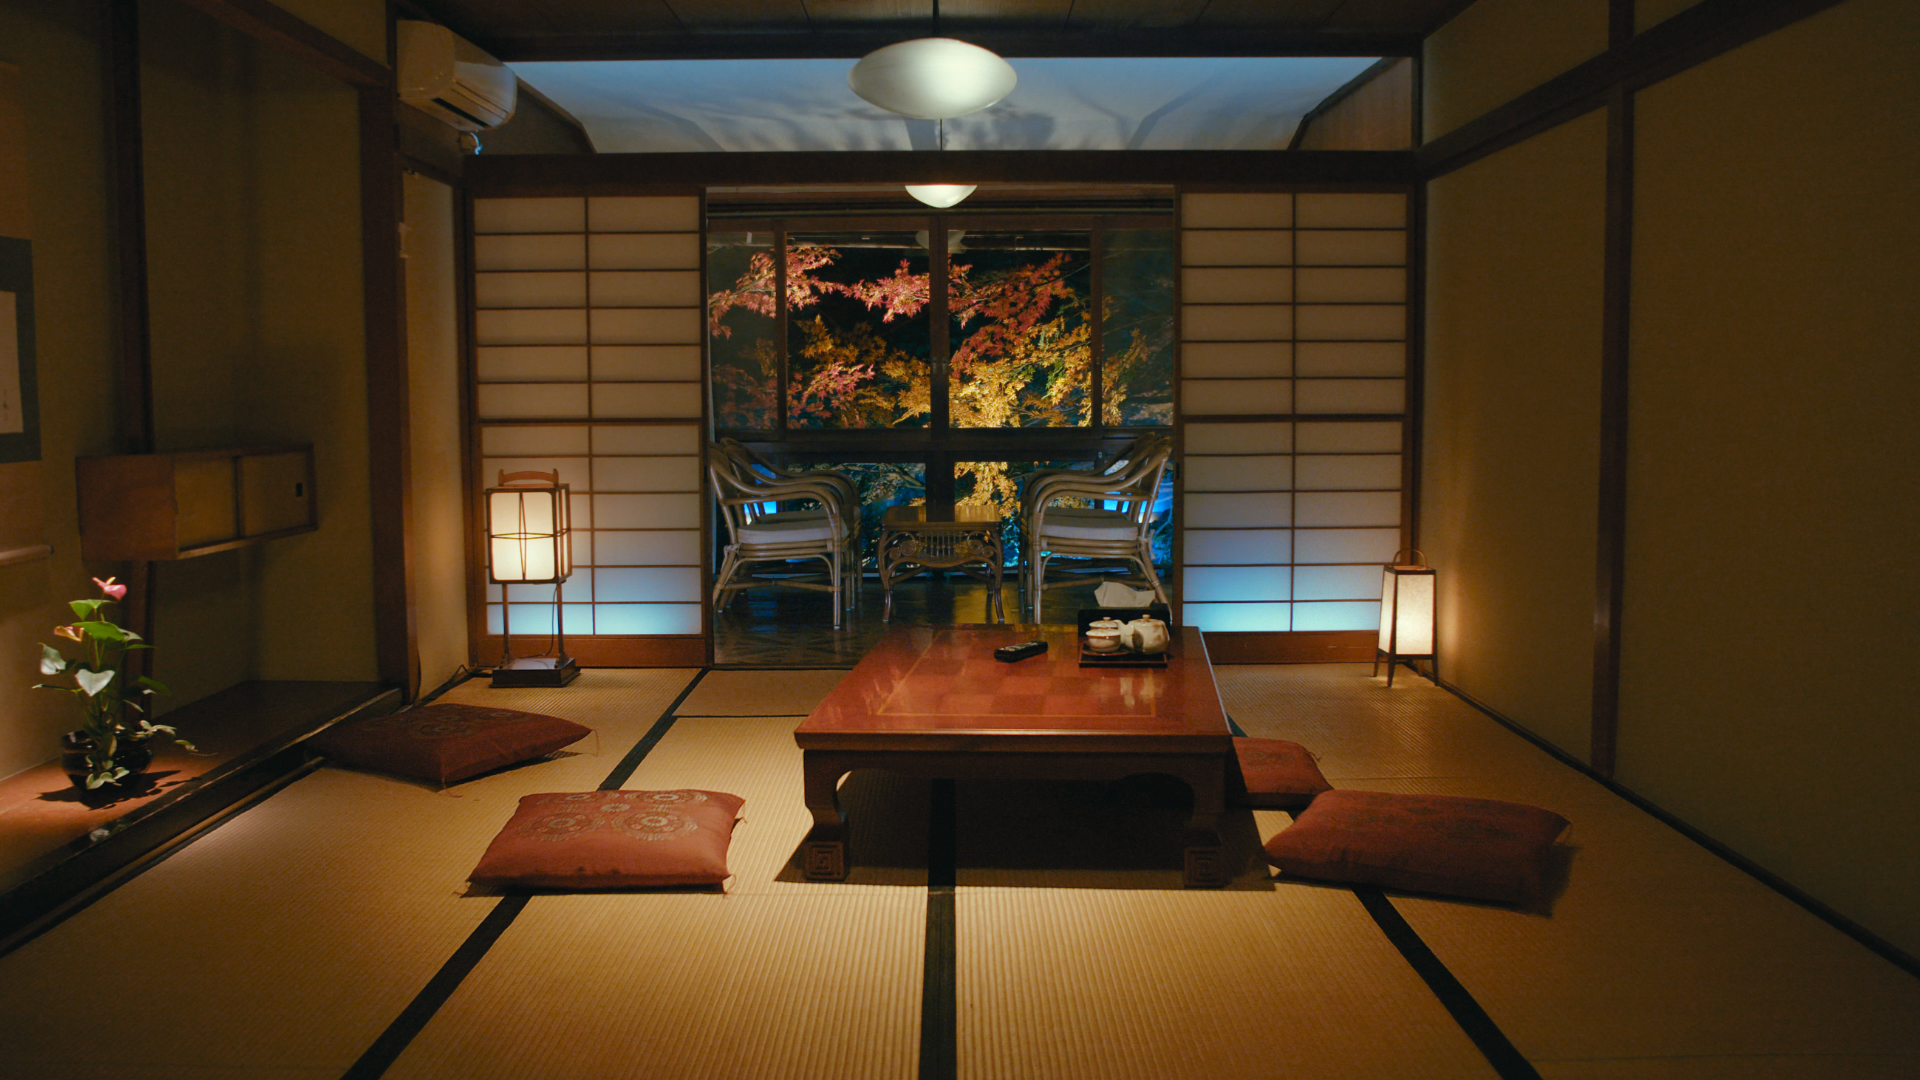 The ryokan also features self-driving tables and floor cushions.